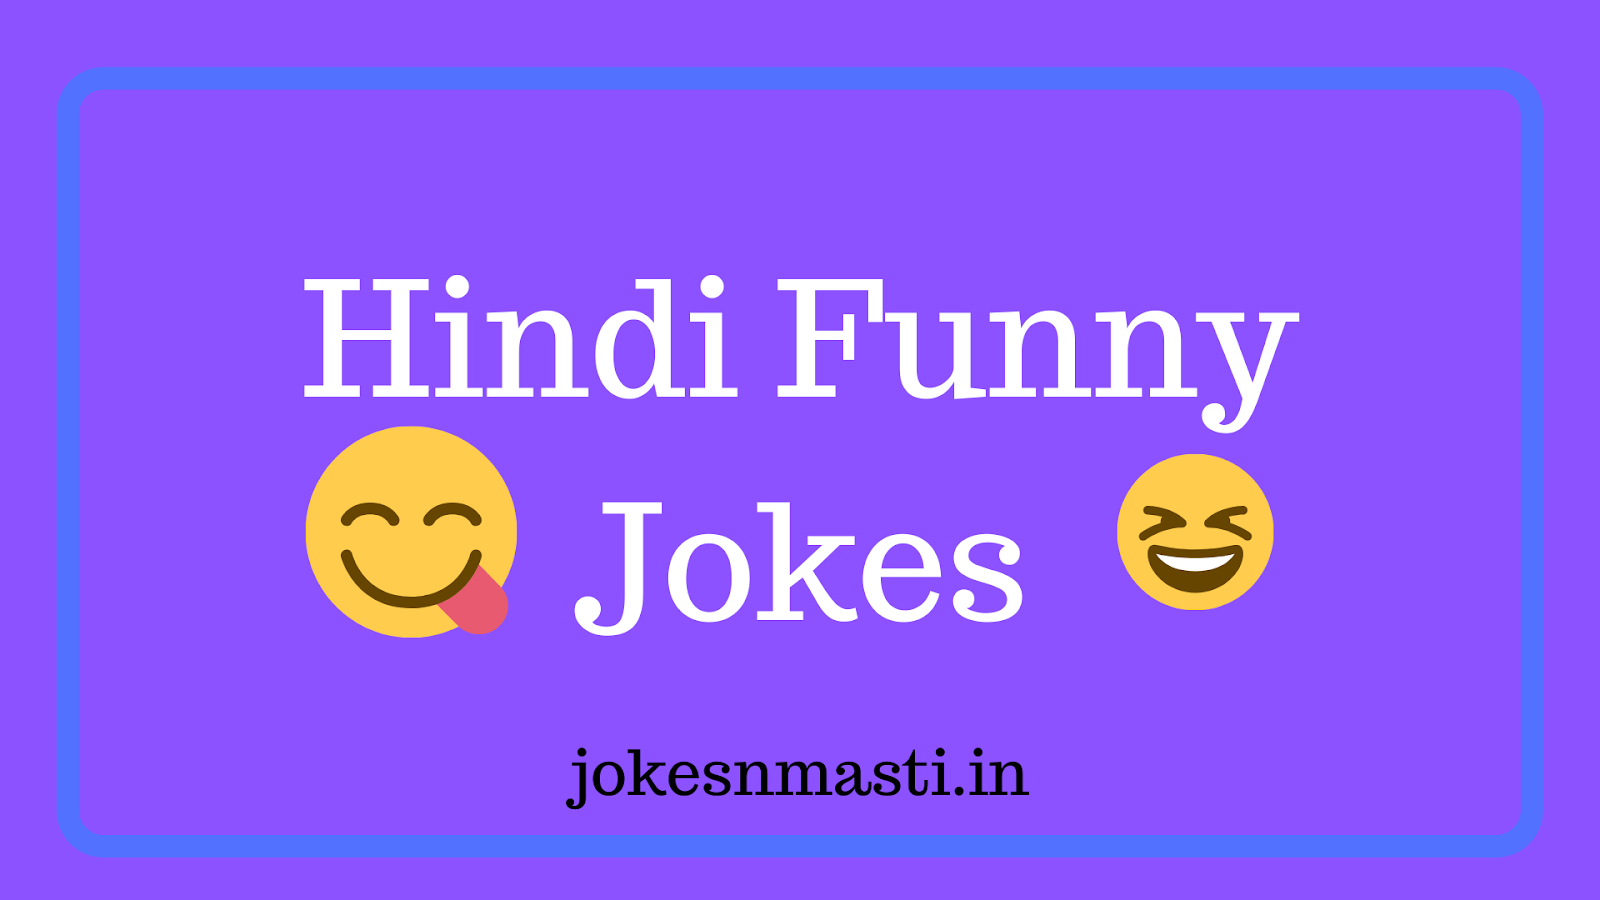 Hindi Funny Jokes, Latest Jokes Collection